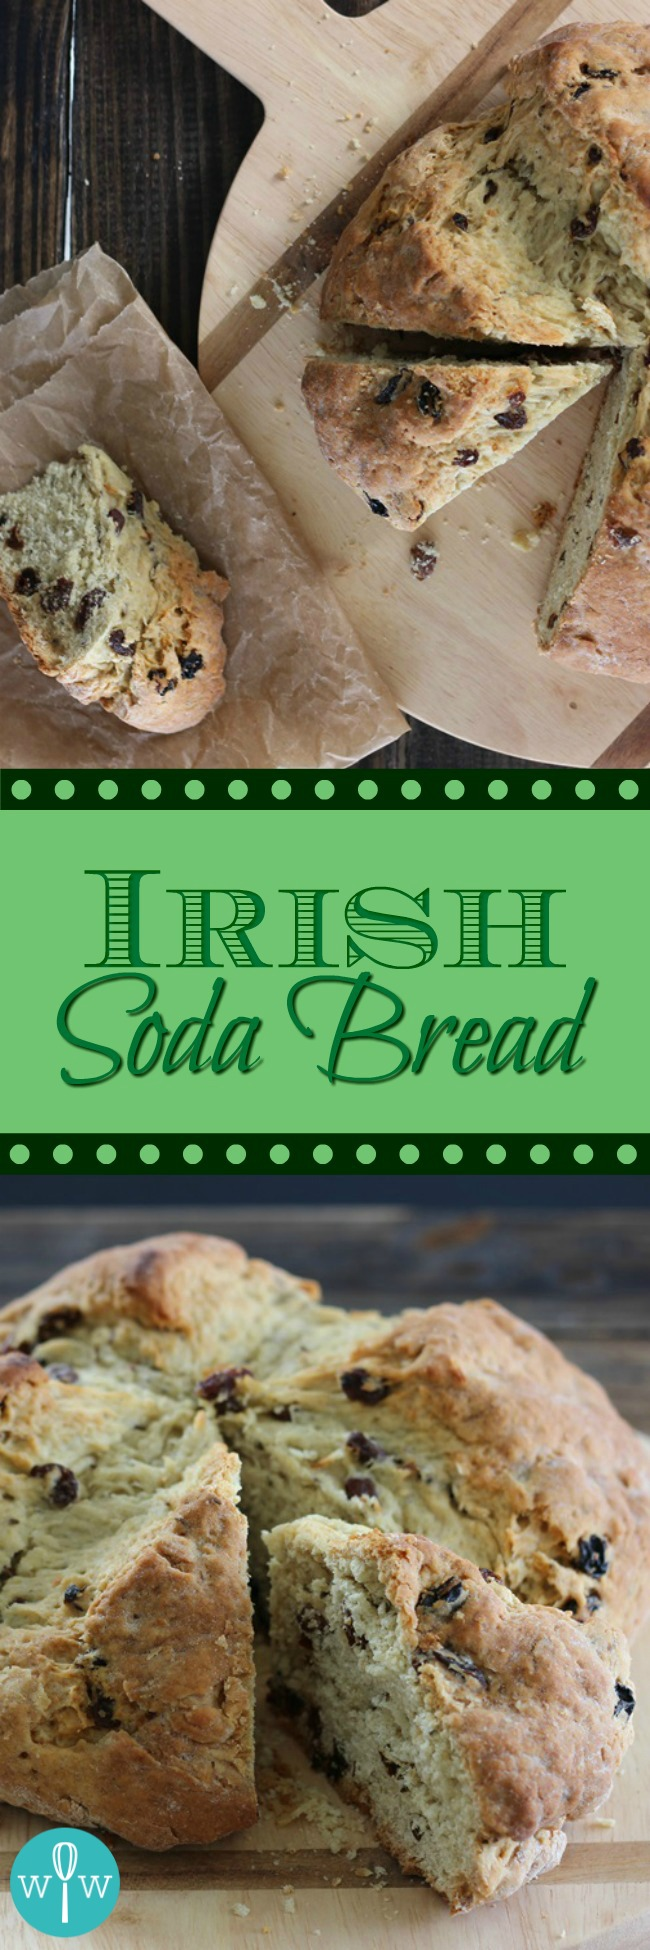 Irish Soda Bread (American-Style) - Flecked with raisins and caraway seeds, this Irish Soda Bread recipe is sweet, moist, and tender with a pleasantly crunchy outer crust. | www.worthwhisking.com